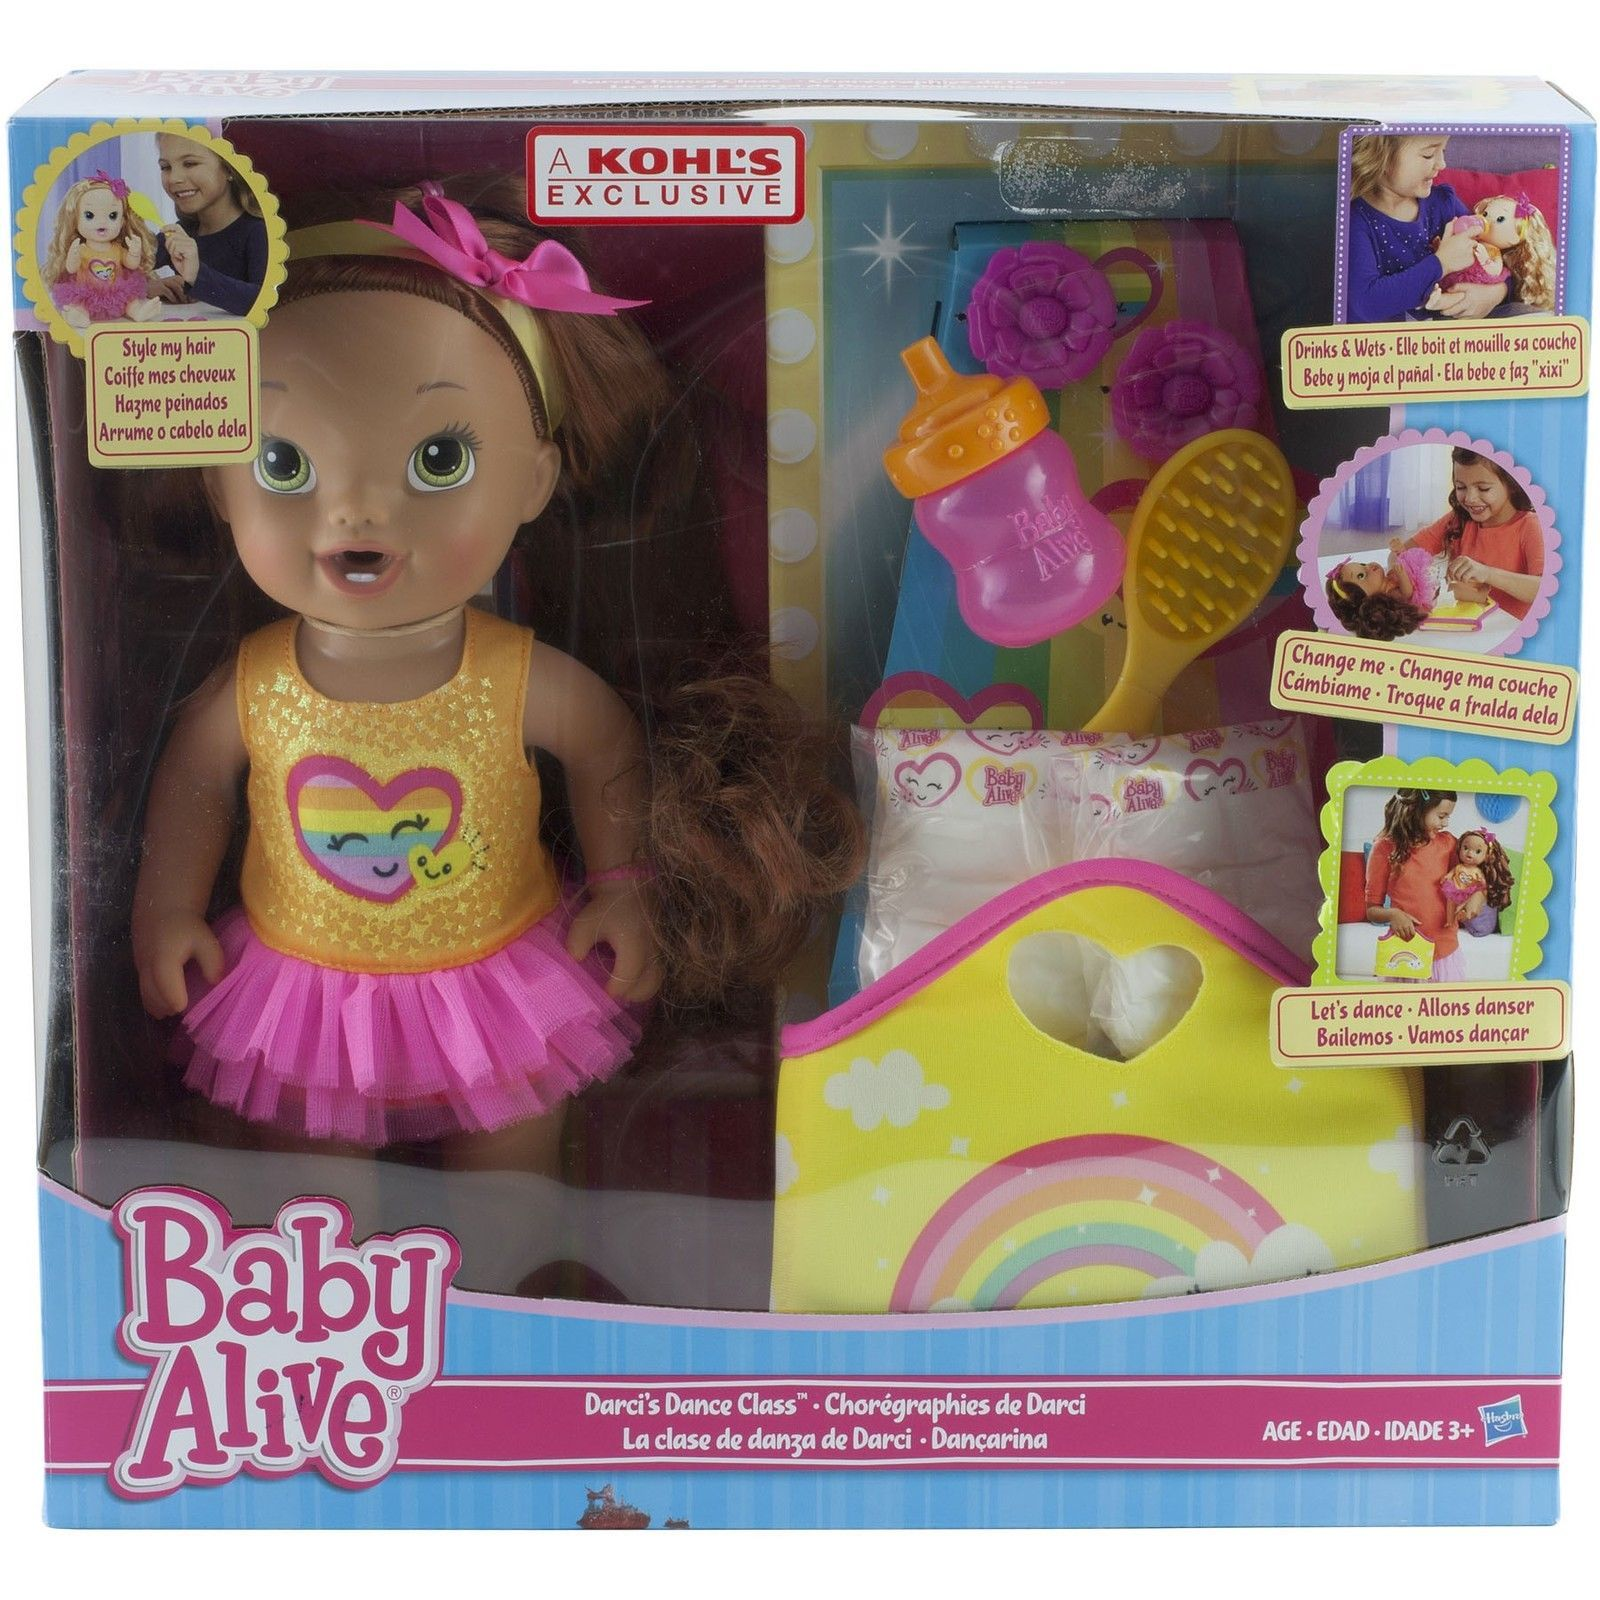 Baby Alive Darci's Dance Class Brown Hair Doll https://t.co/CCeEtBHzcm https://t.co/GGBUFgVYtv